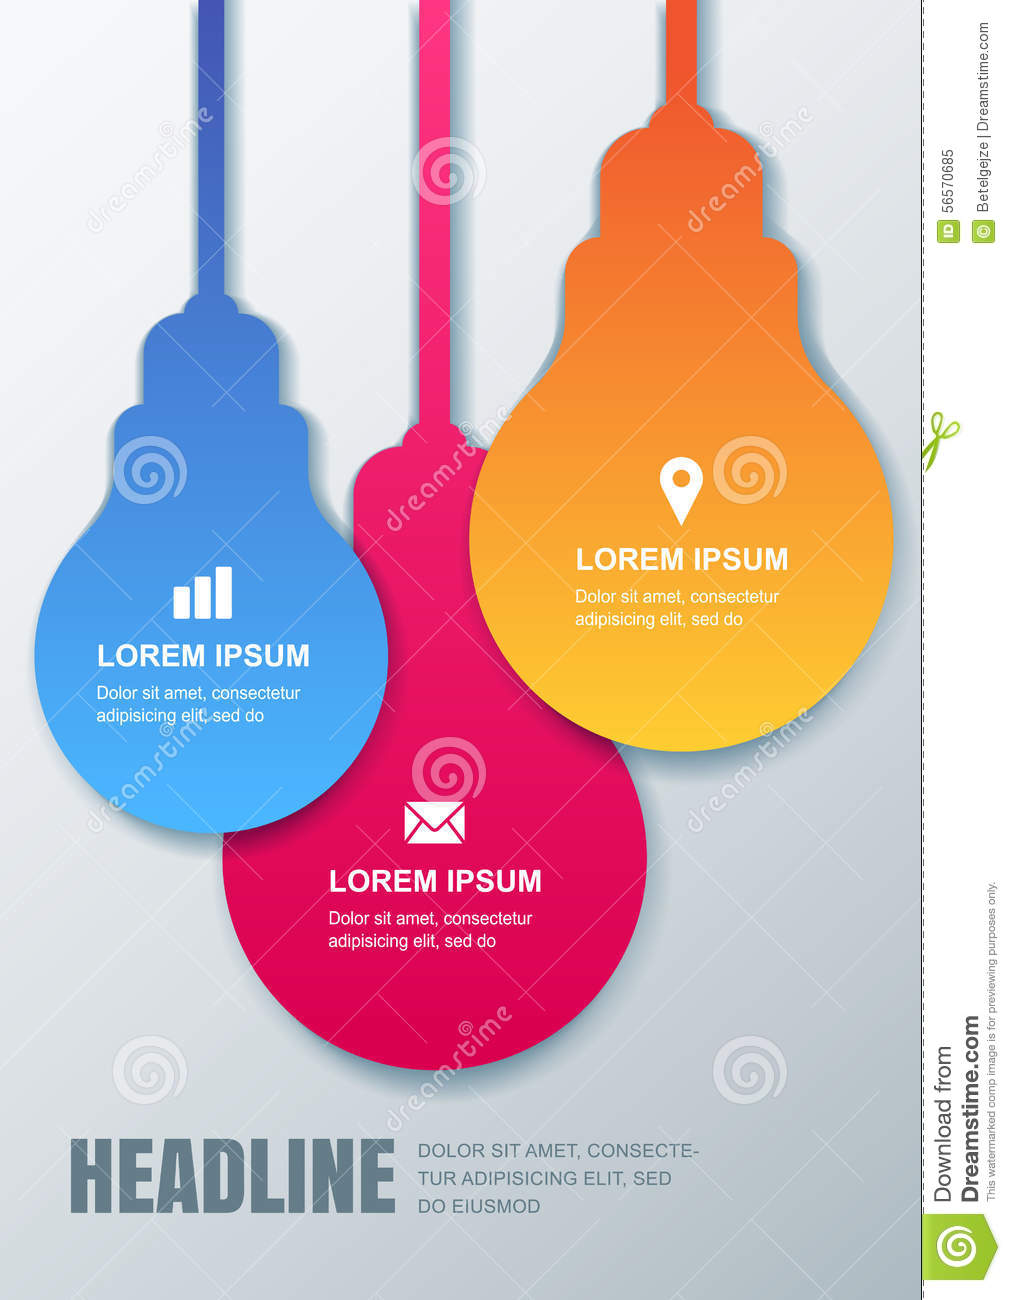 Multicolor Paper Lamp Vector Design Template Concept For Business